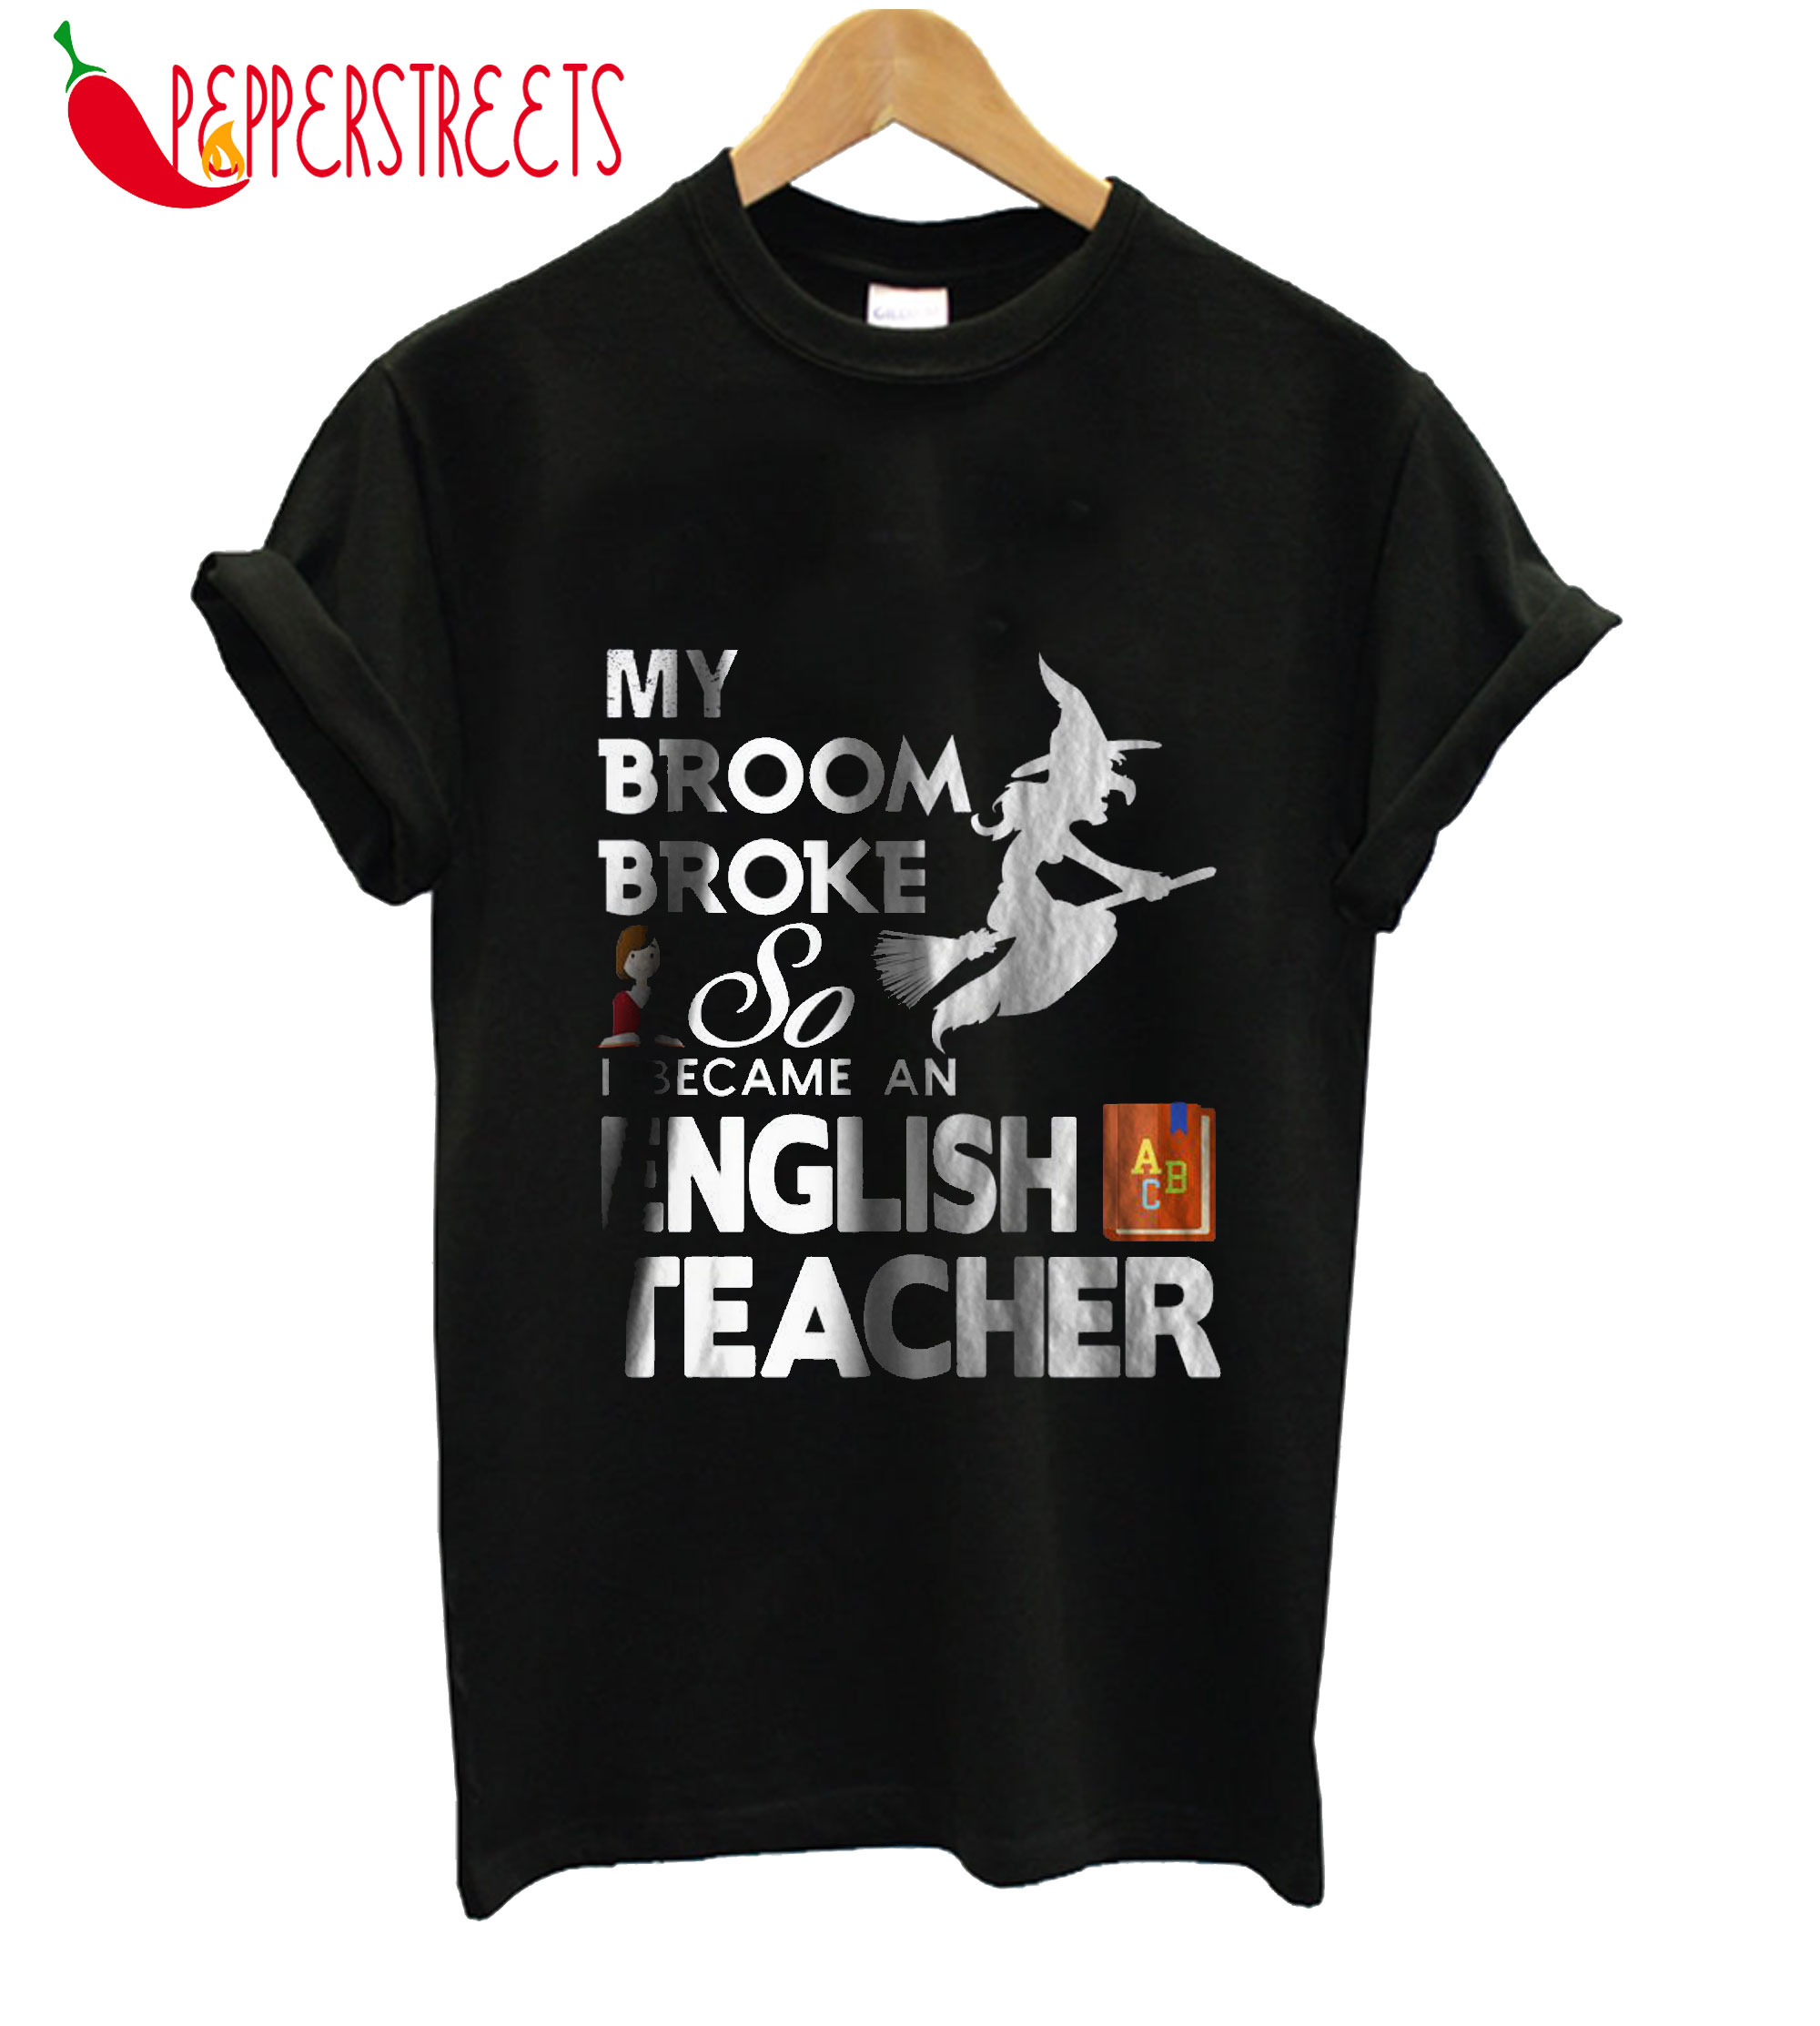 MyBroom Broke So Became An English Teacher T-Shirt